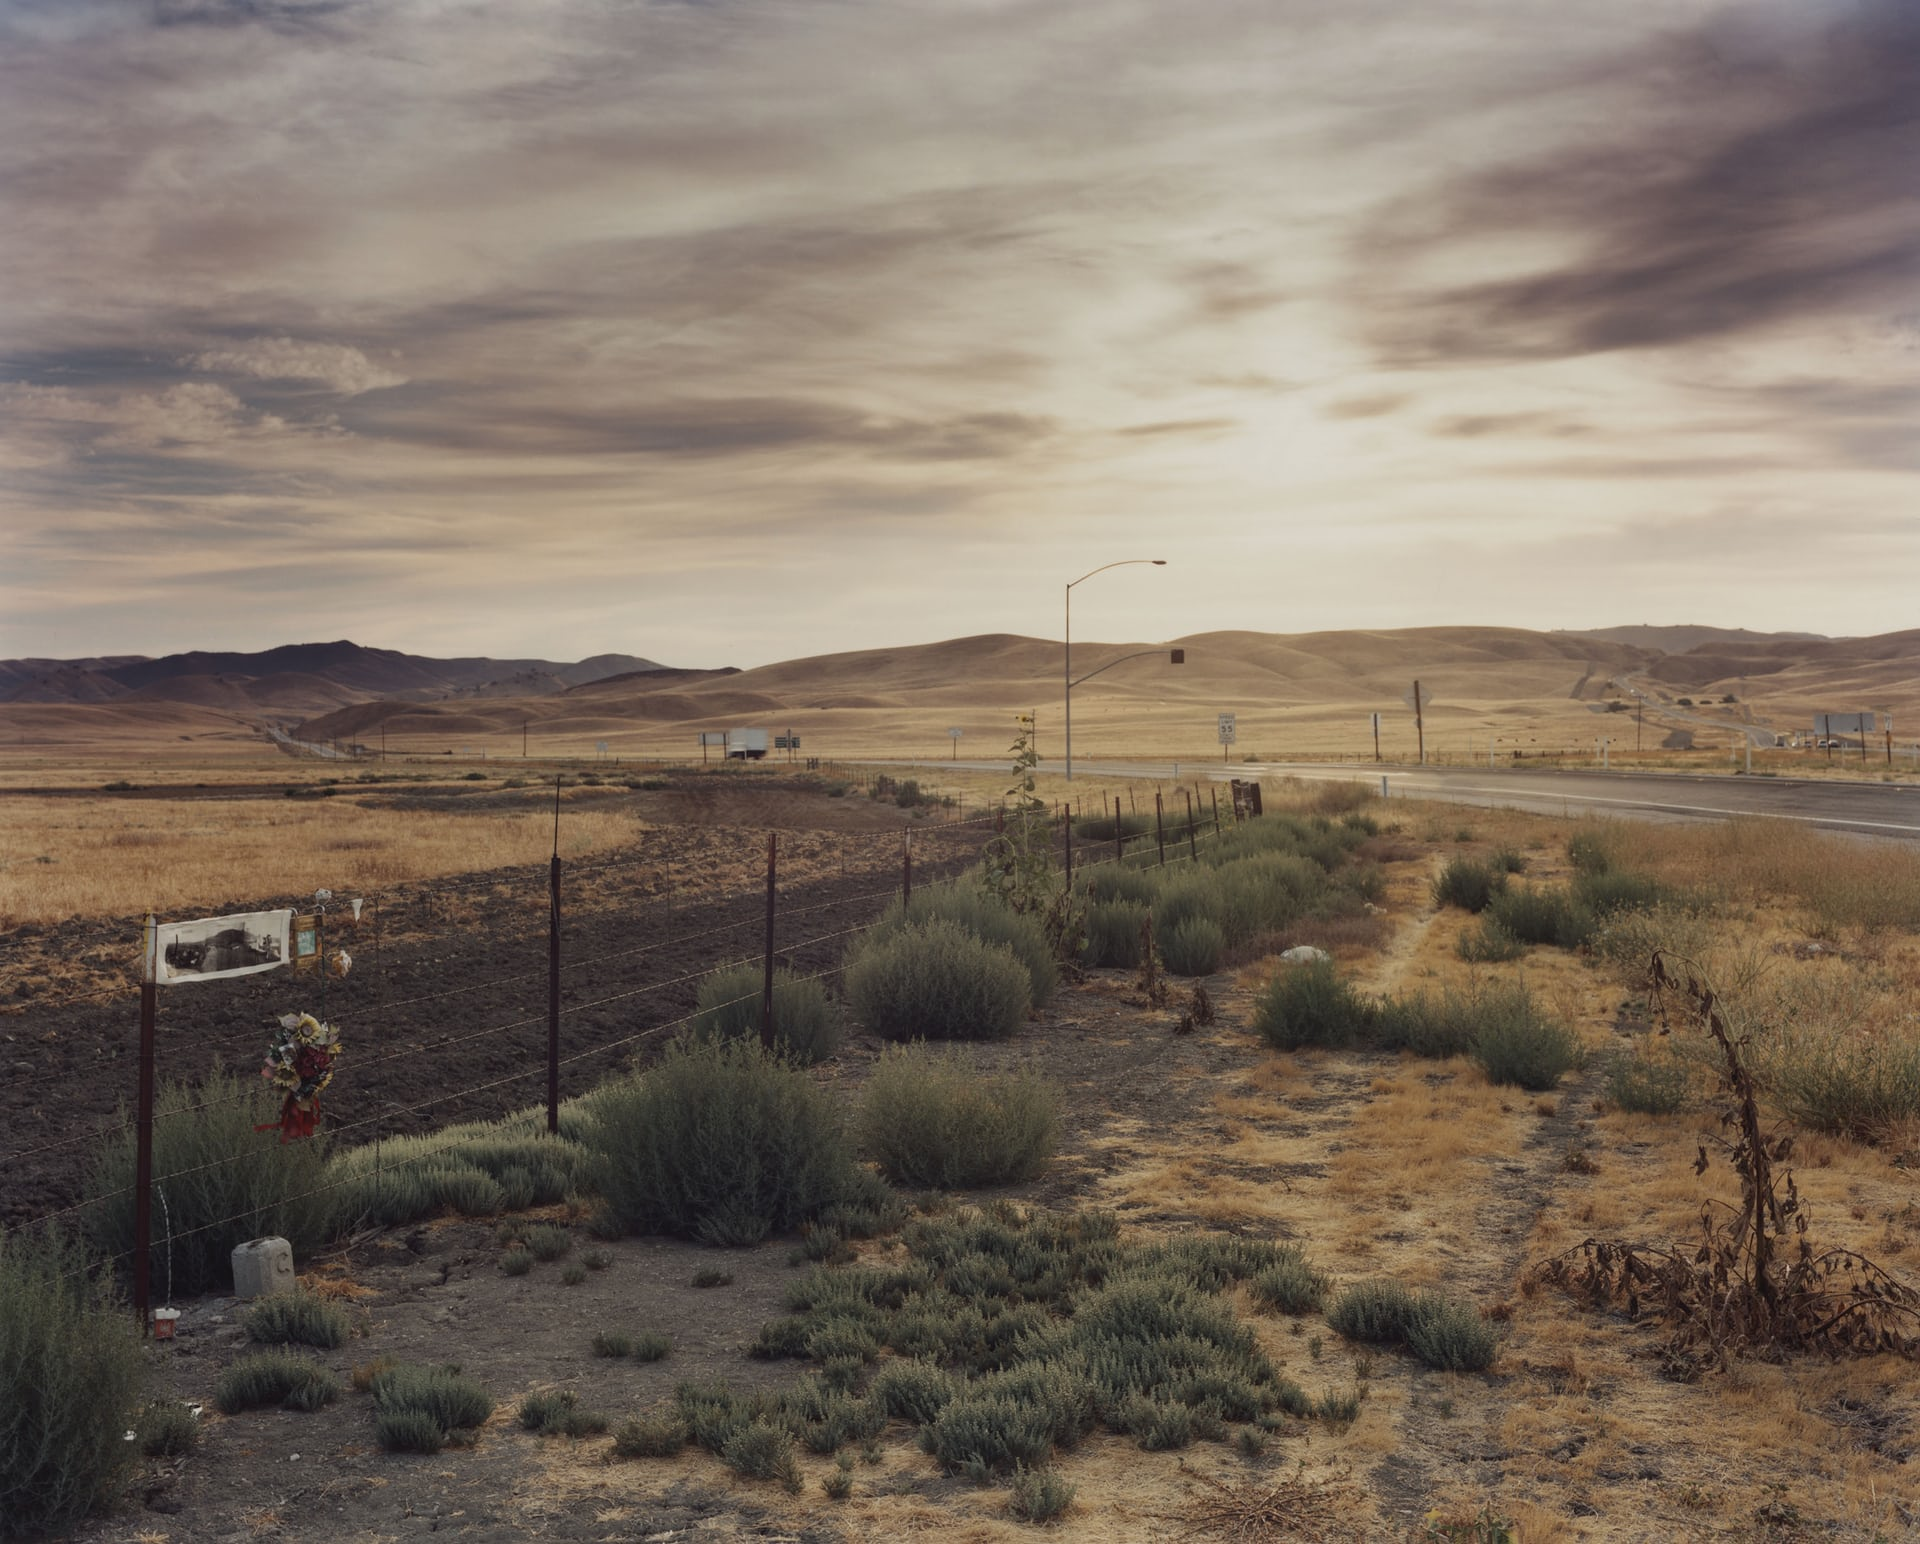 James Dean, Route 46 in California, 30 September 1955 When James Dean, at the wheel of his Porsche, notices a car in the distance, he reassures his passenger: 'He has seen us, he will stop.' But the driver of the Ford Tudor hasn't seen anything, because his vehicle is very high. Dean cannot avoid the collision. His passenger survives, but Dean's feet are stuck under the pedals and his neck is broken upon impact